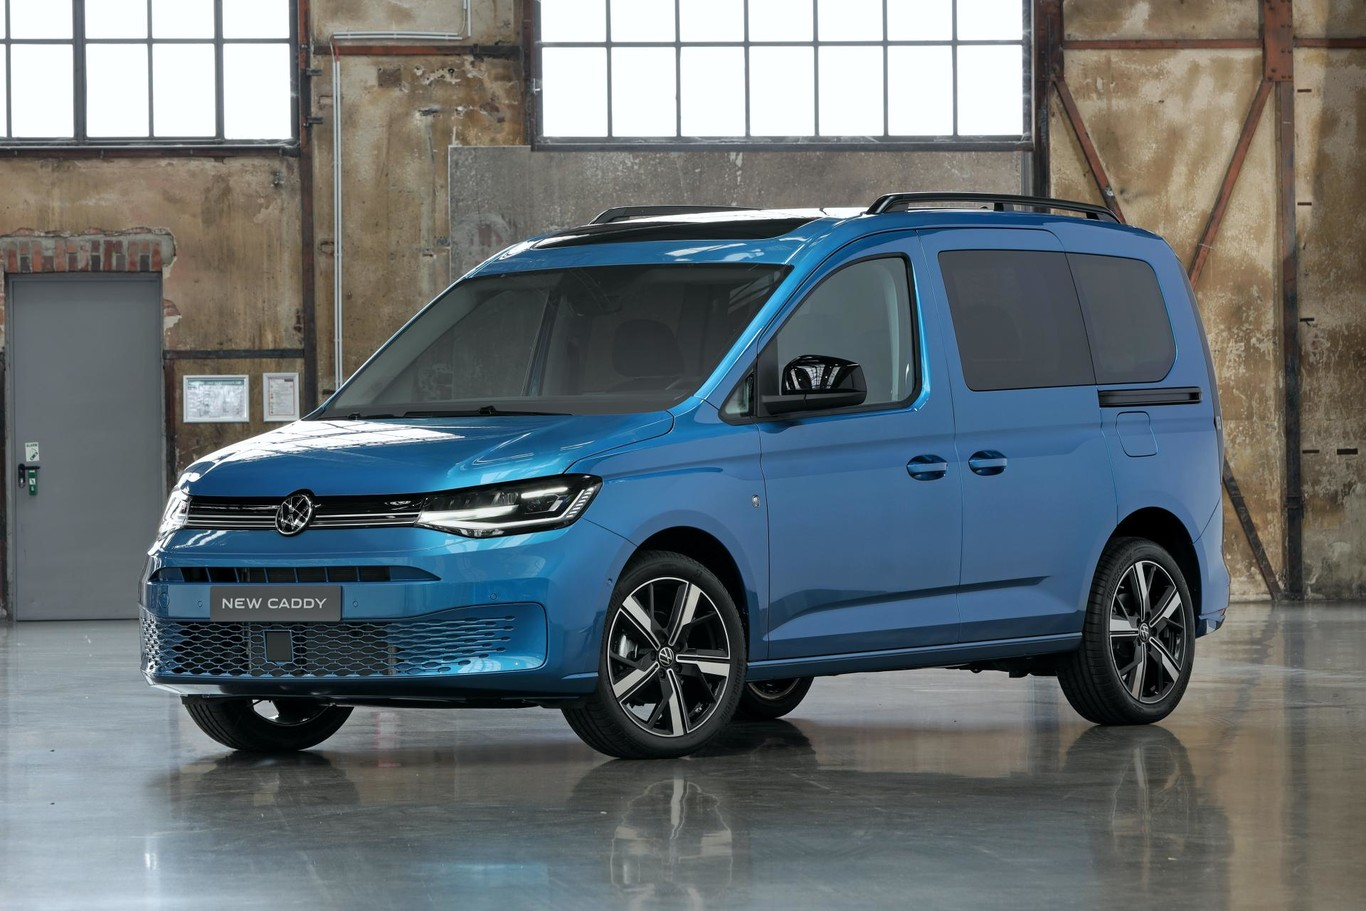 2021 VW Caddy Price and Review